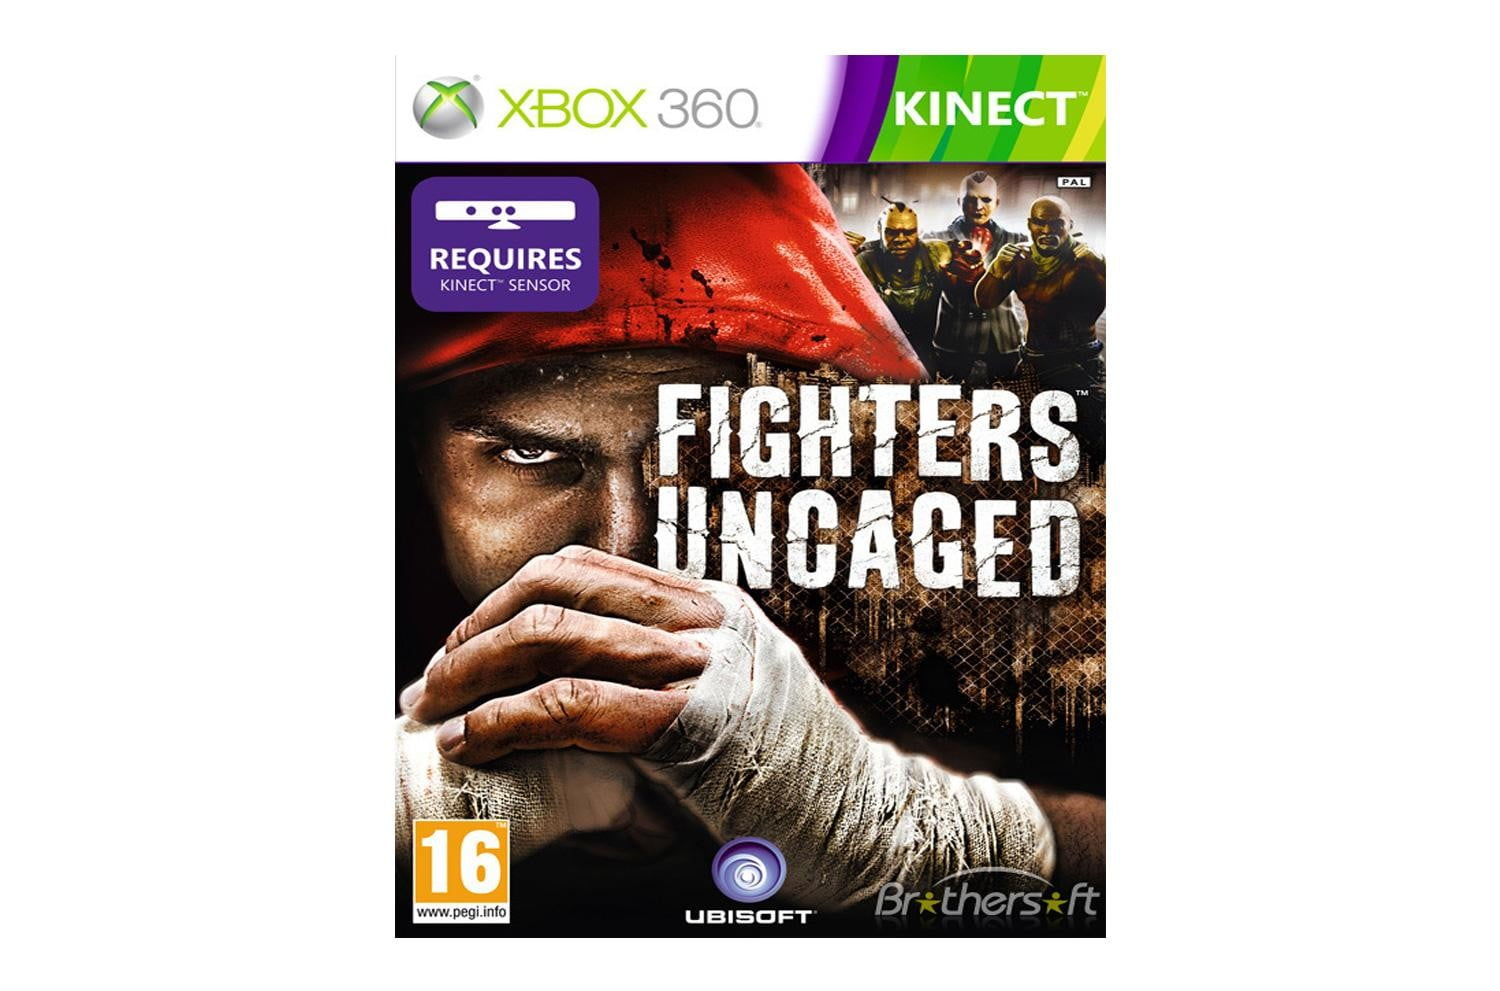 Fighters-Uncaged-cover-art